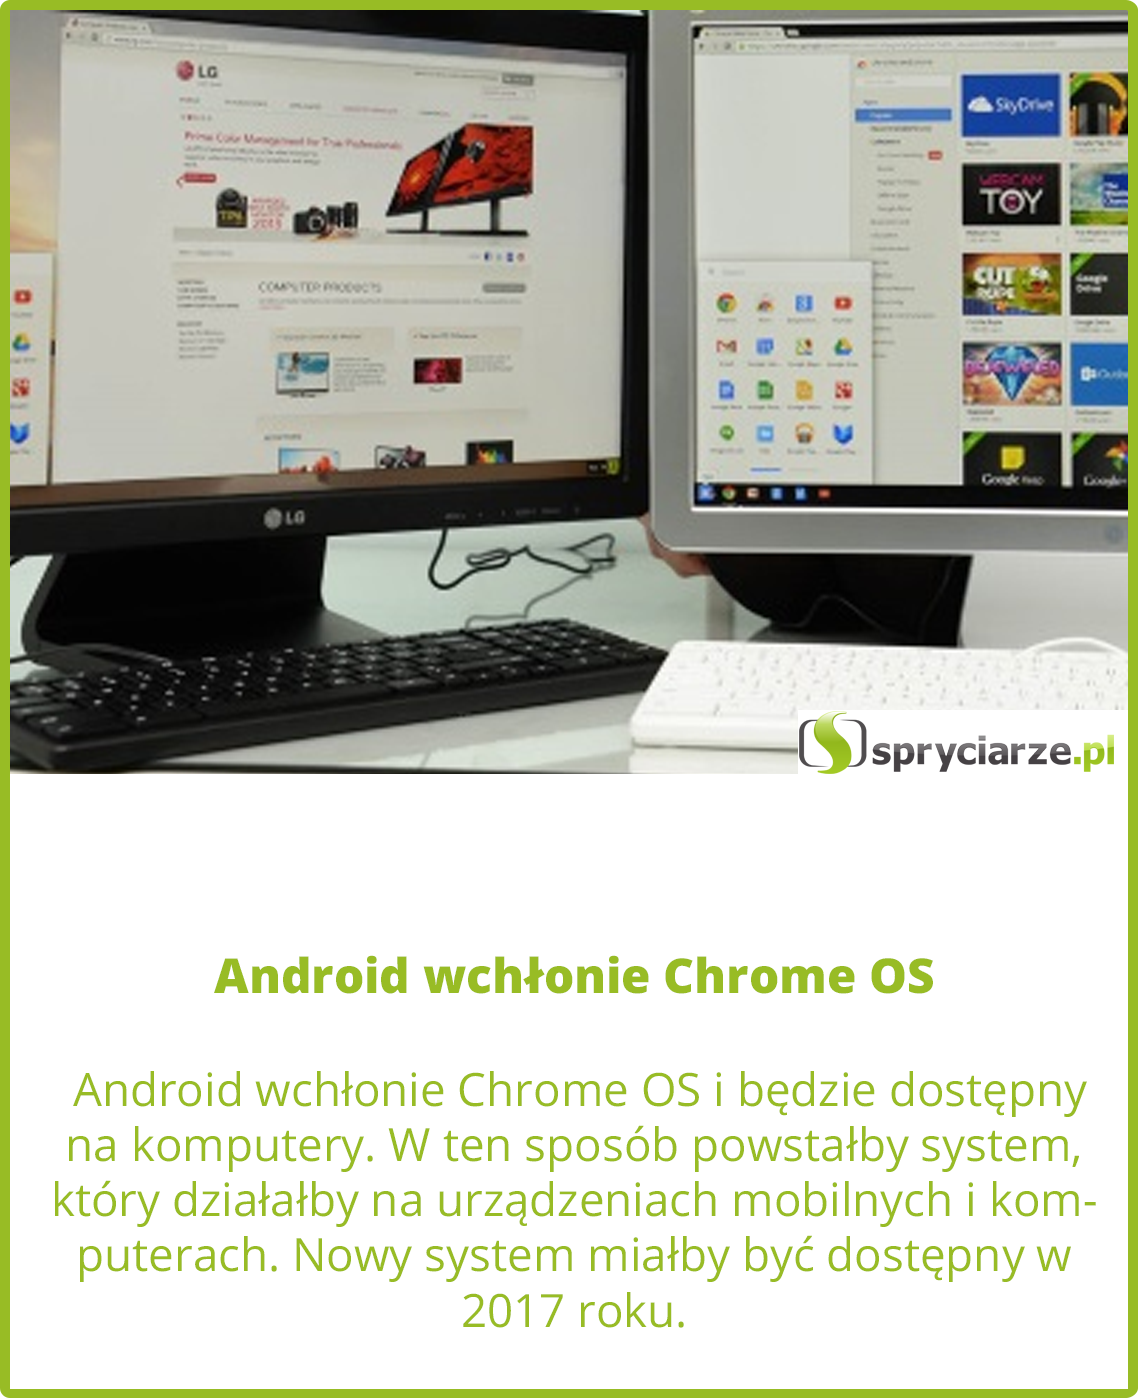 Android wchłonie Chrome OS